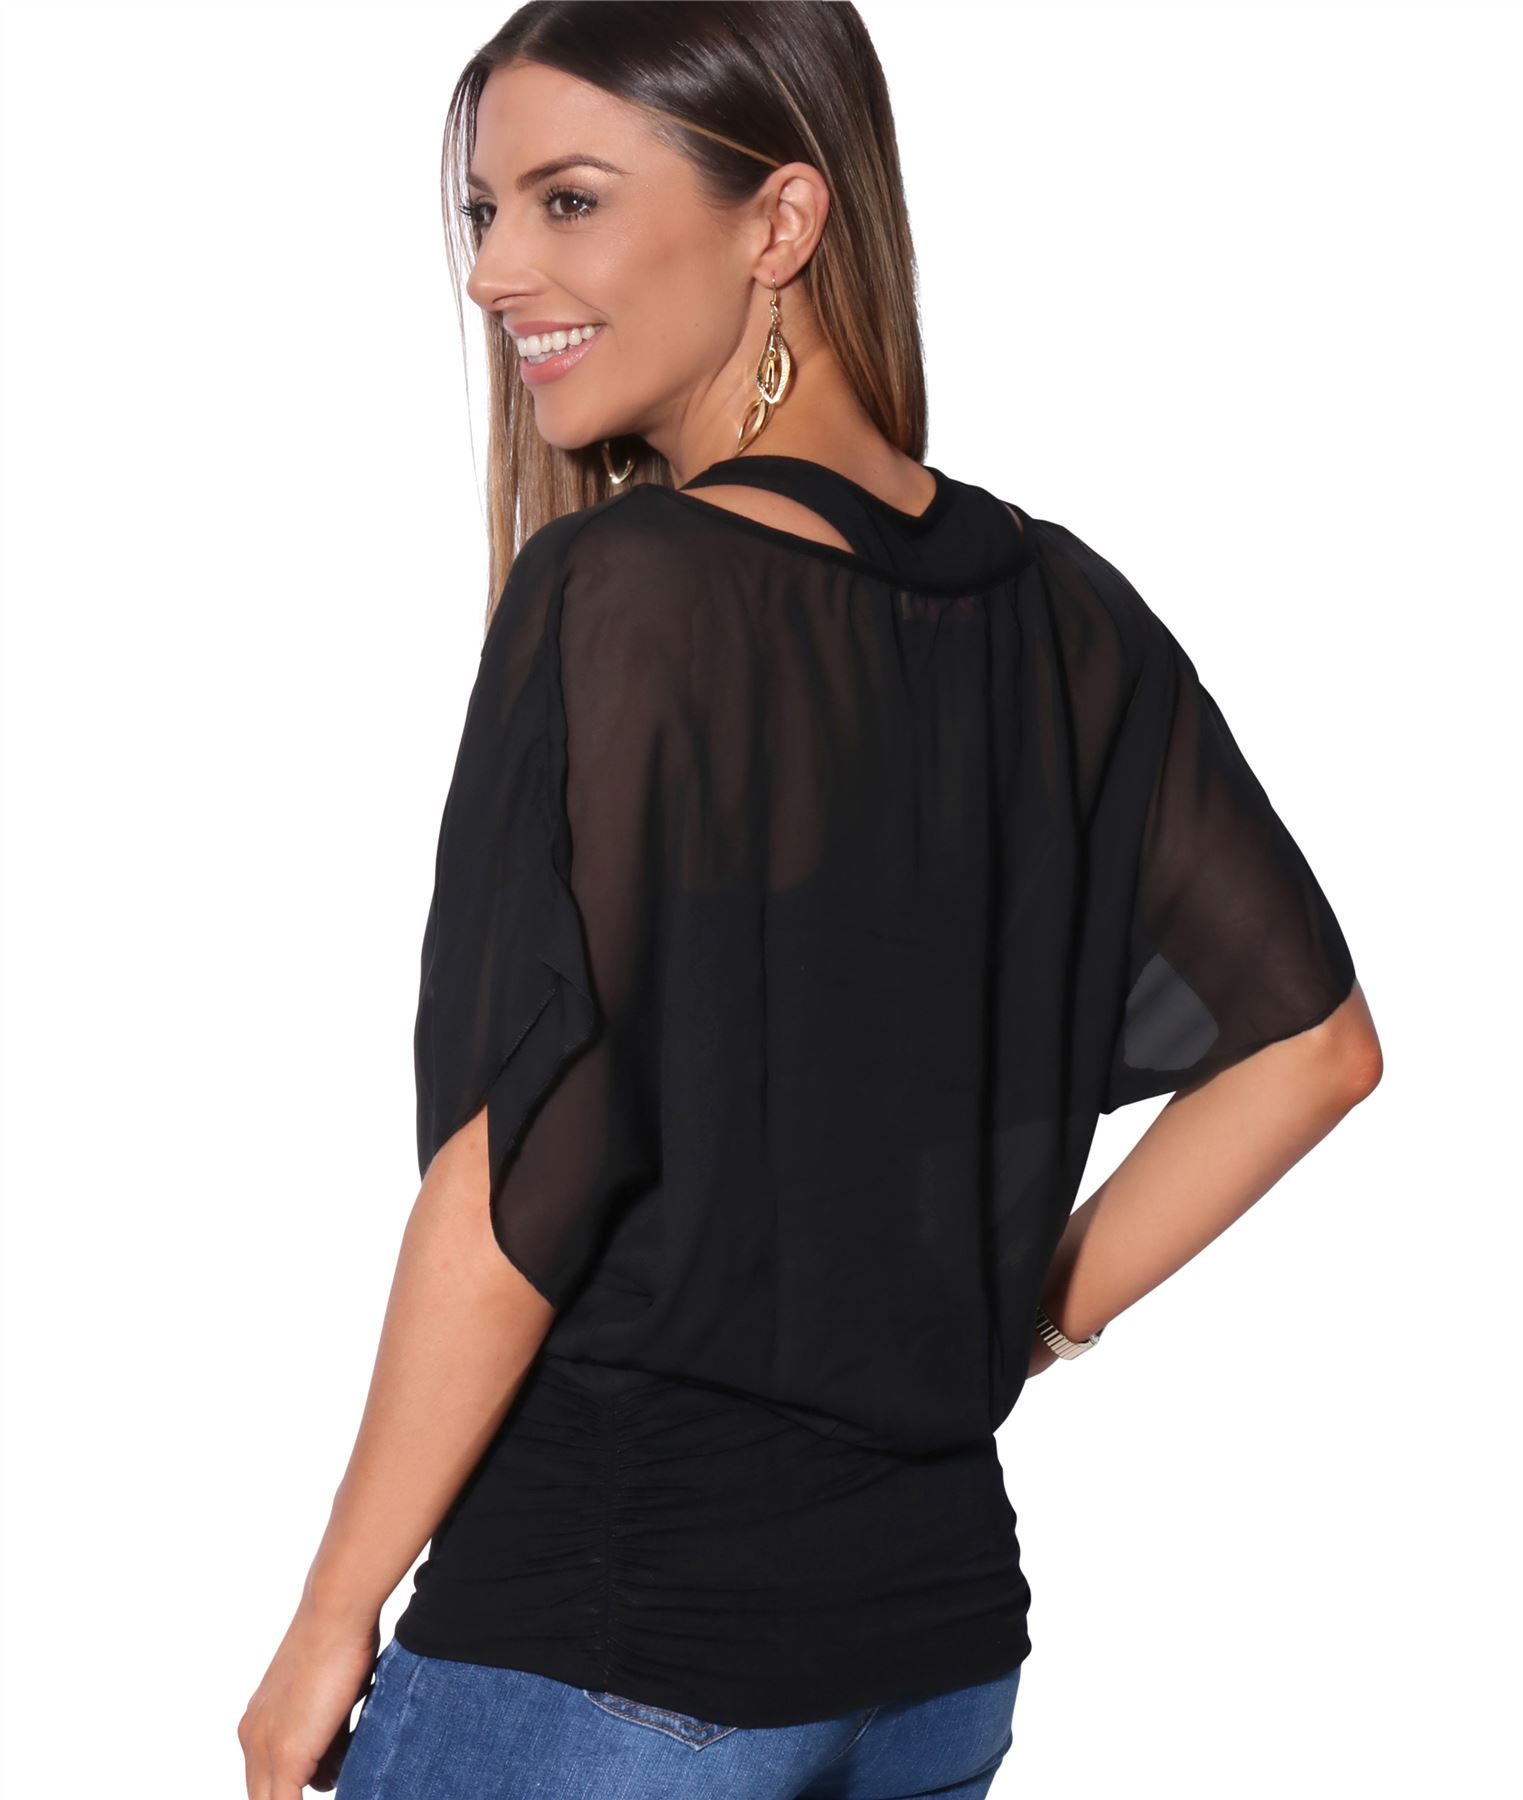 Womens-Scoop-Neck-Blouse-Baggy-Batwing-T-Shirt-Top-Ladies-Oversized-Chiffon-2in1 thumbnail 6